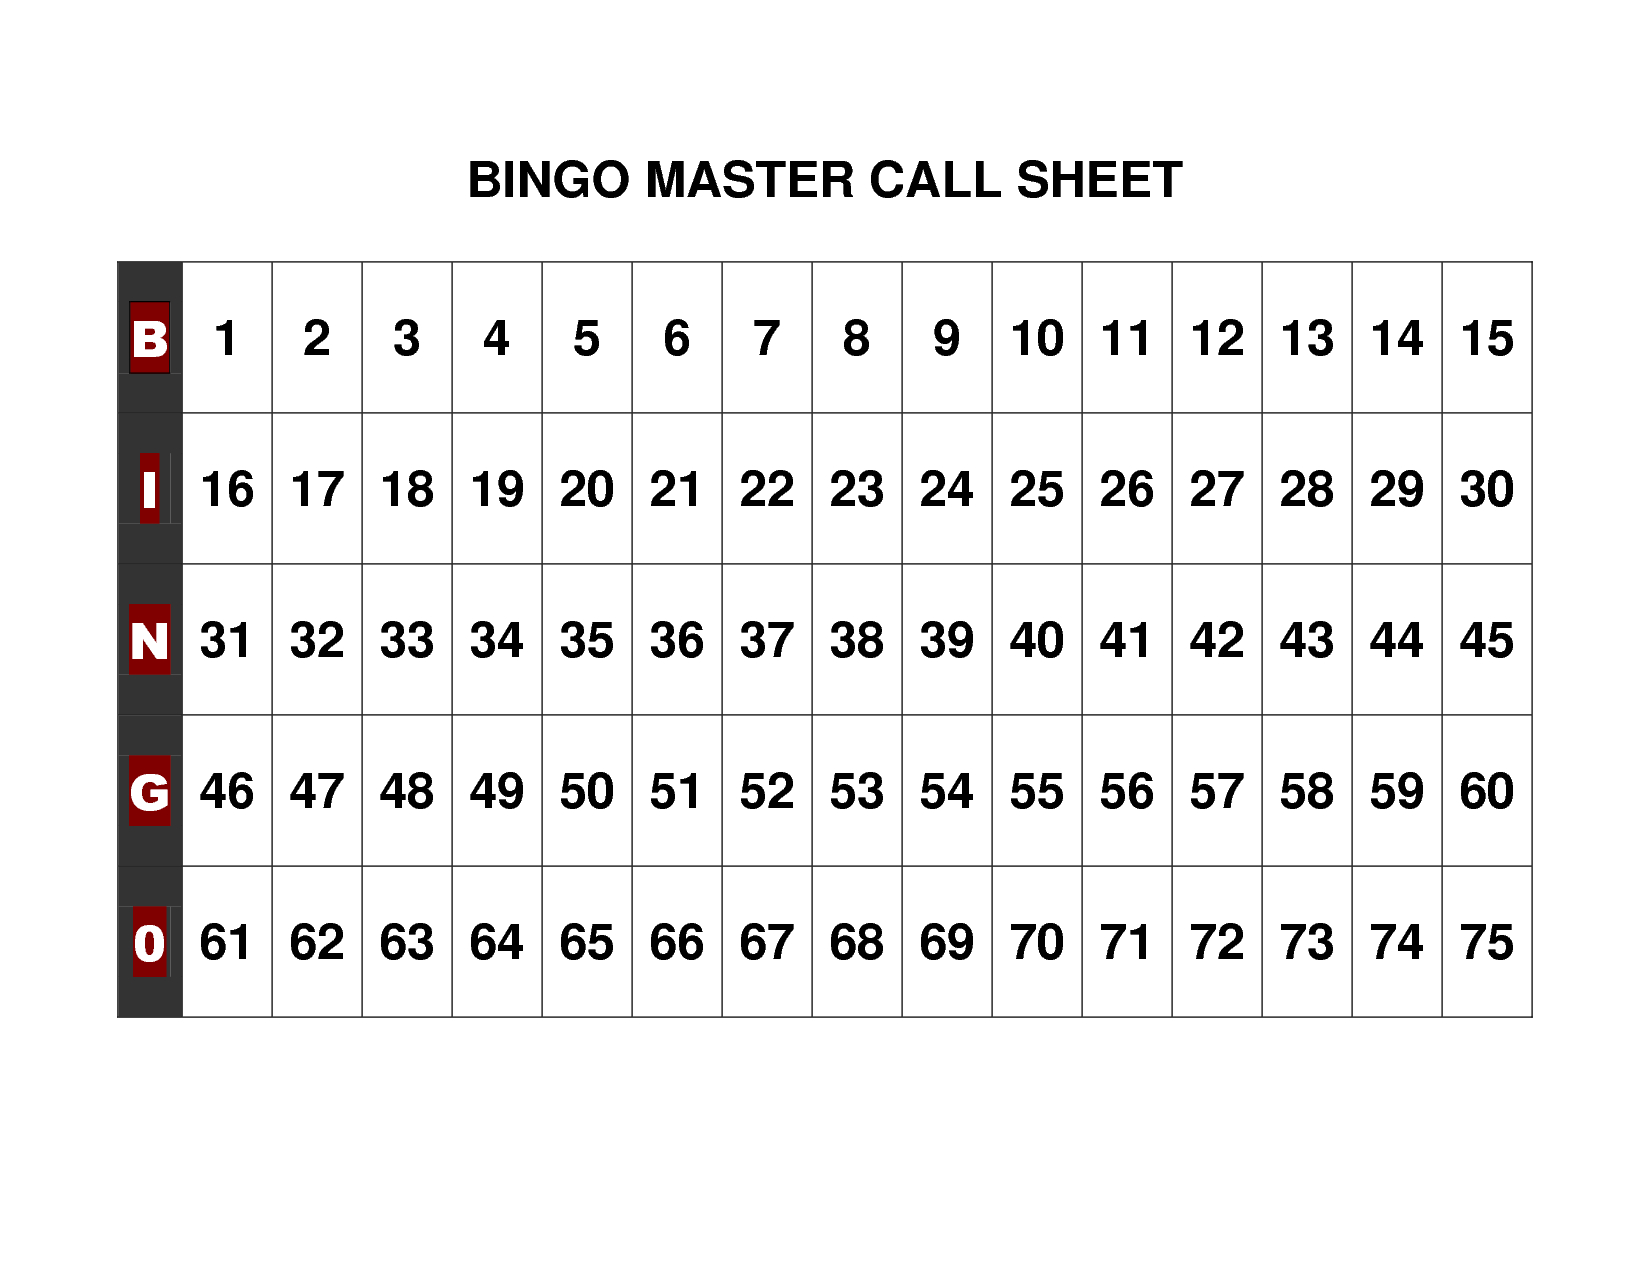 Free+Printable+Bingo+Call+Sheet | Bingo | Pinterest | Bingo Calls - Free Printable Bingo Cards 1 75